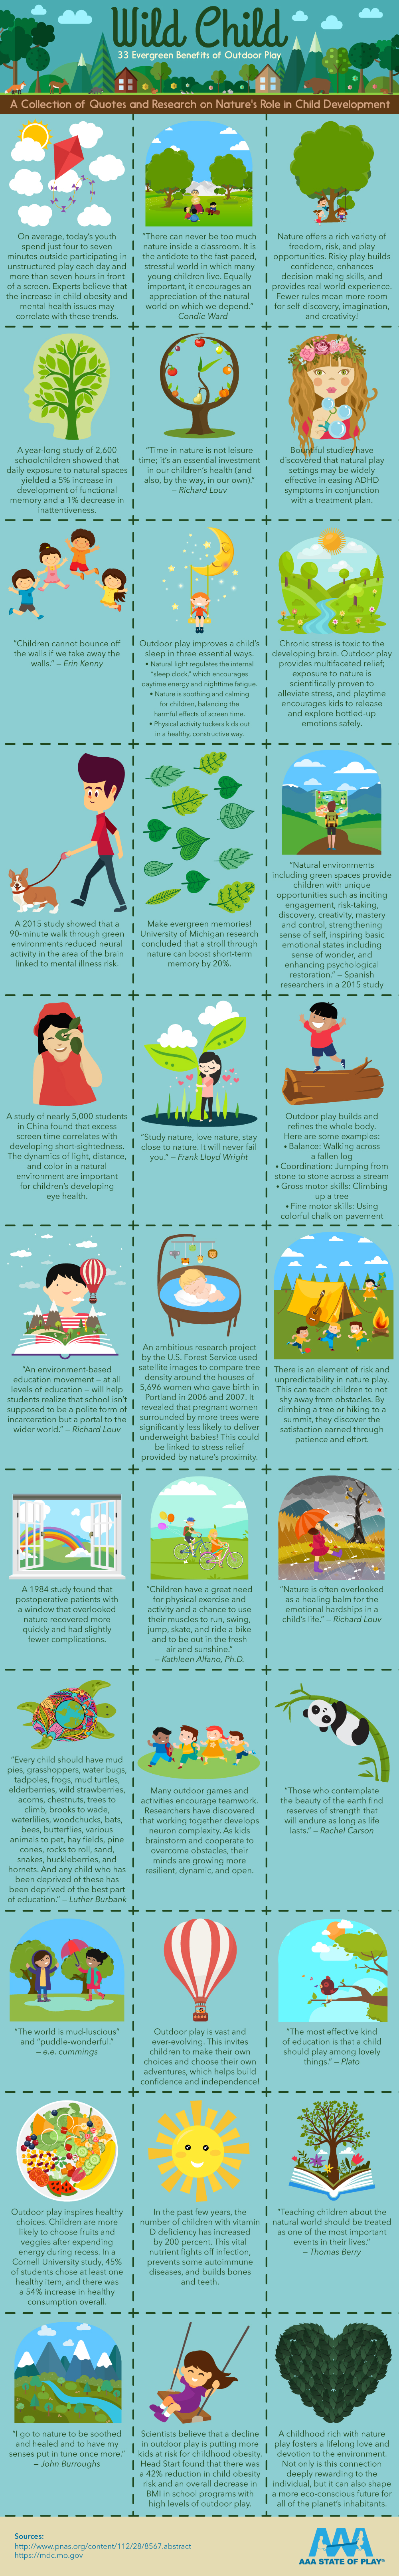 Wild Child: 33 Evergreen Benefits of Outdoor Play - AAAStateofPlay.com - Infographic